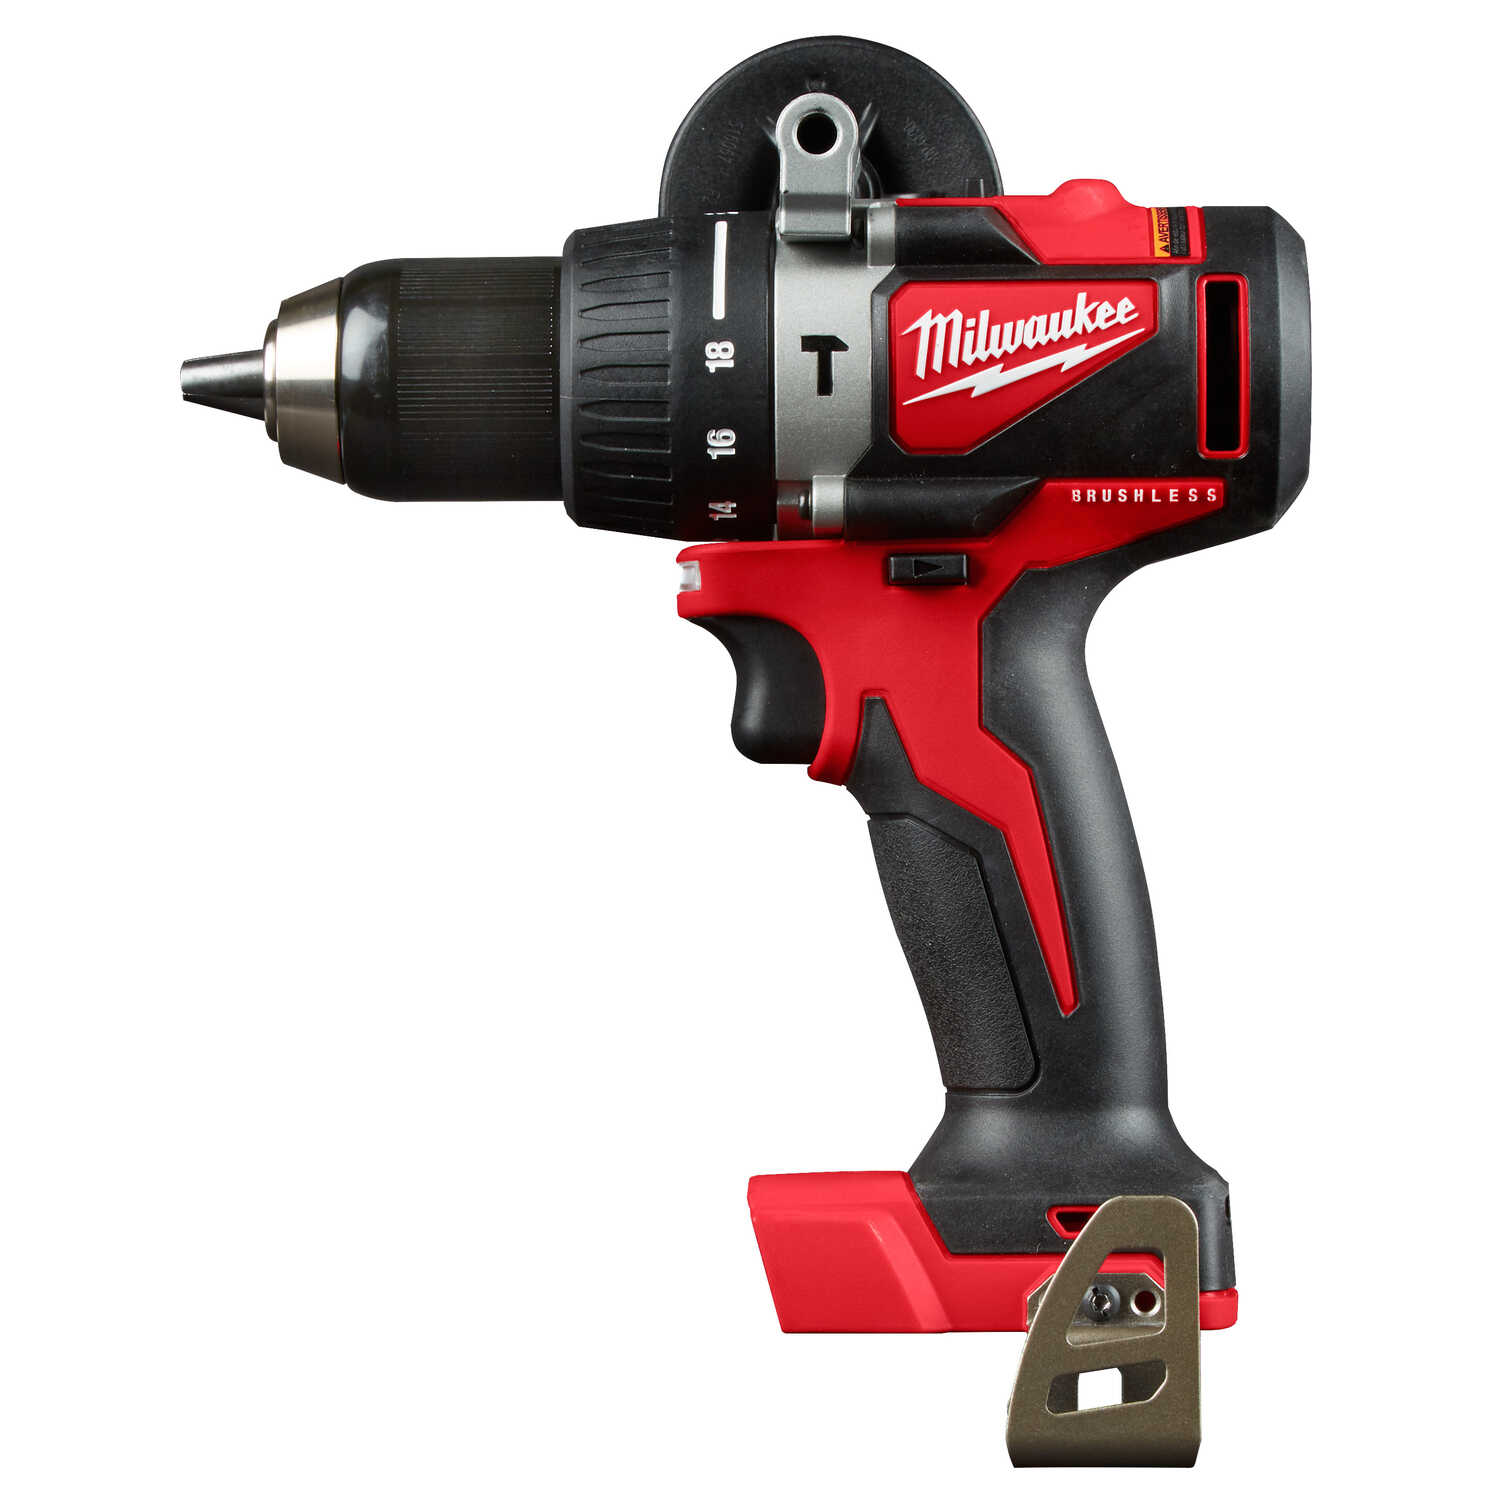 Milwaukee  M18  18 volt 1/2 in. Brushless Cordless Hammer Drill/Driver  1800 rpm 2 speed